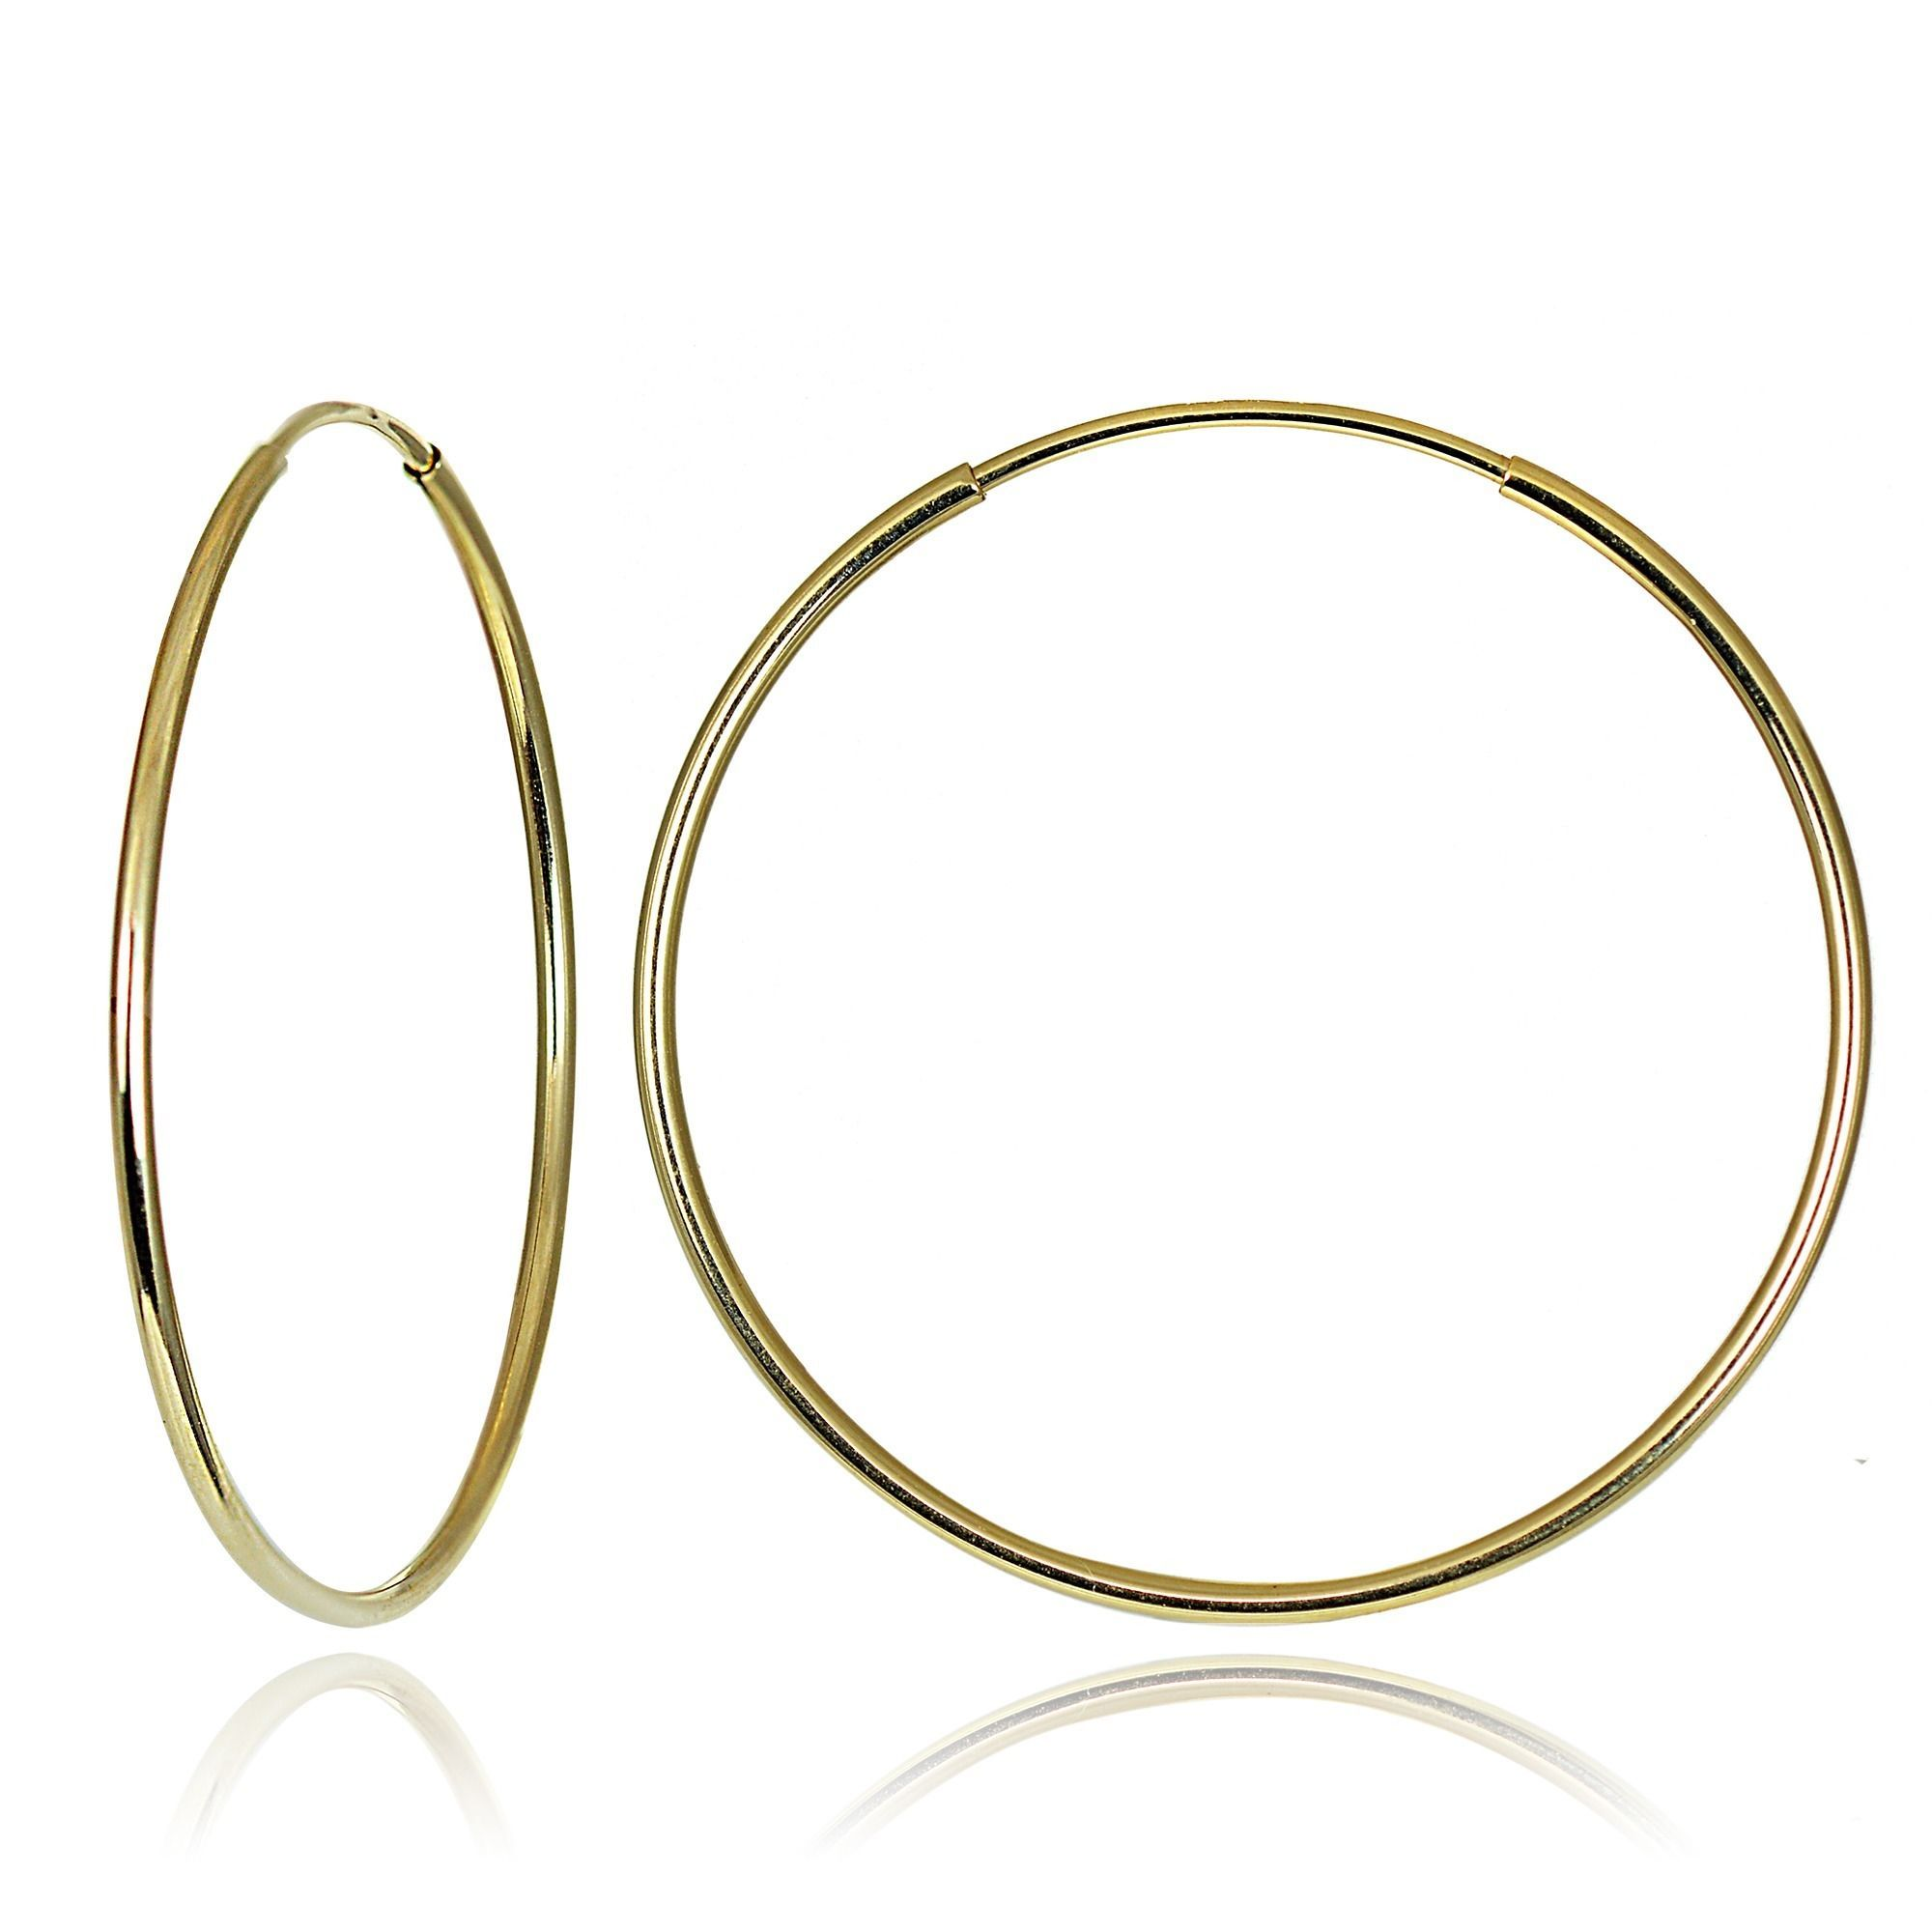 Mondevio 10k Gold 20mm Endless Hoop Earrings (10k Gold 20mm Endless Hoop  Earrings),